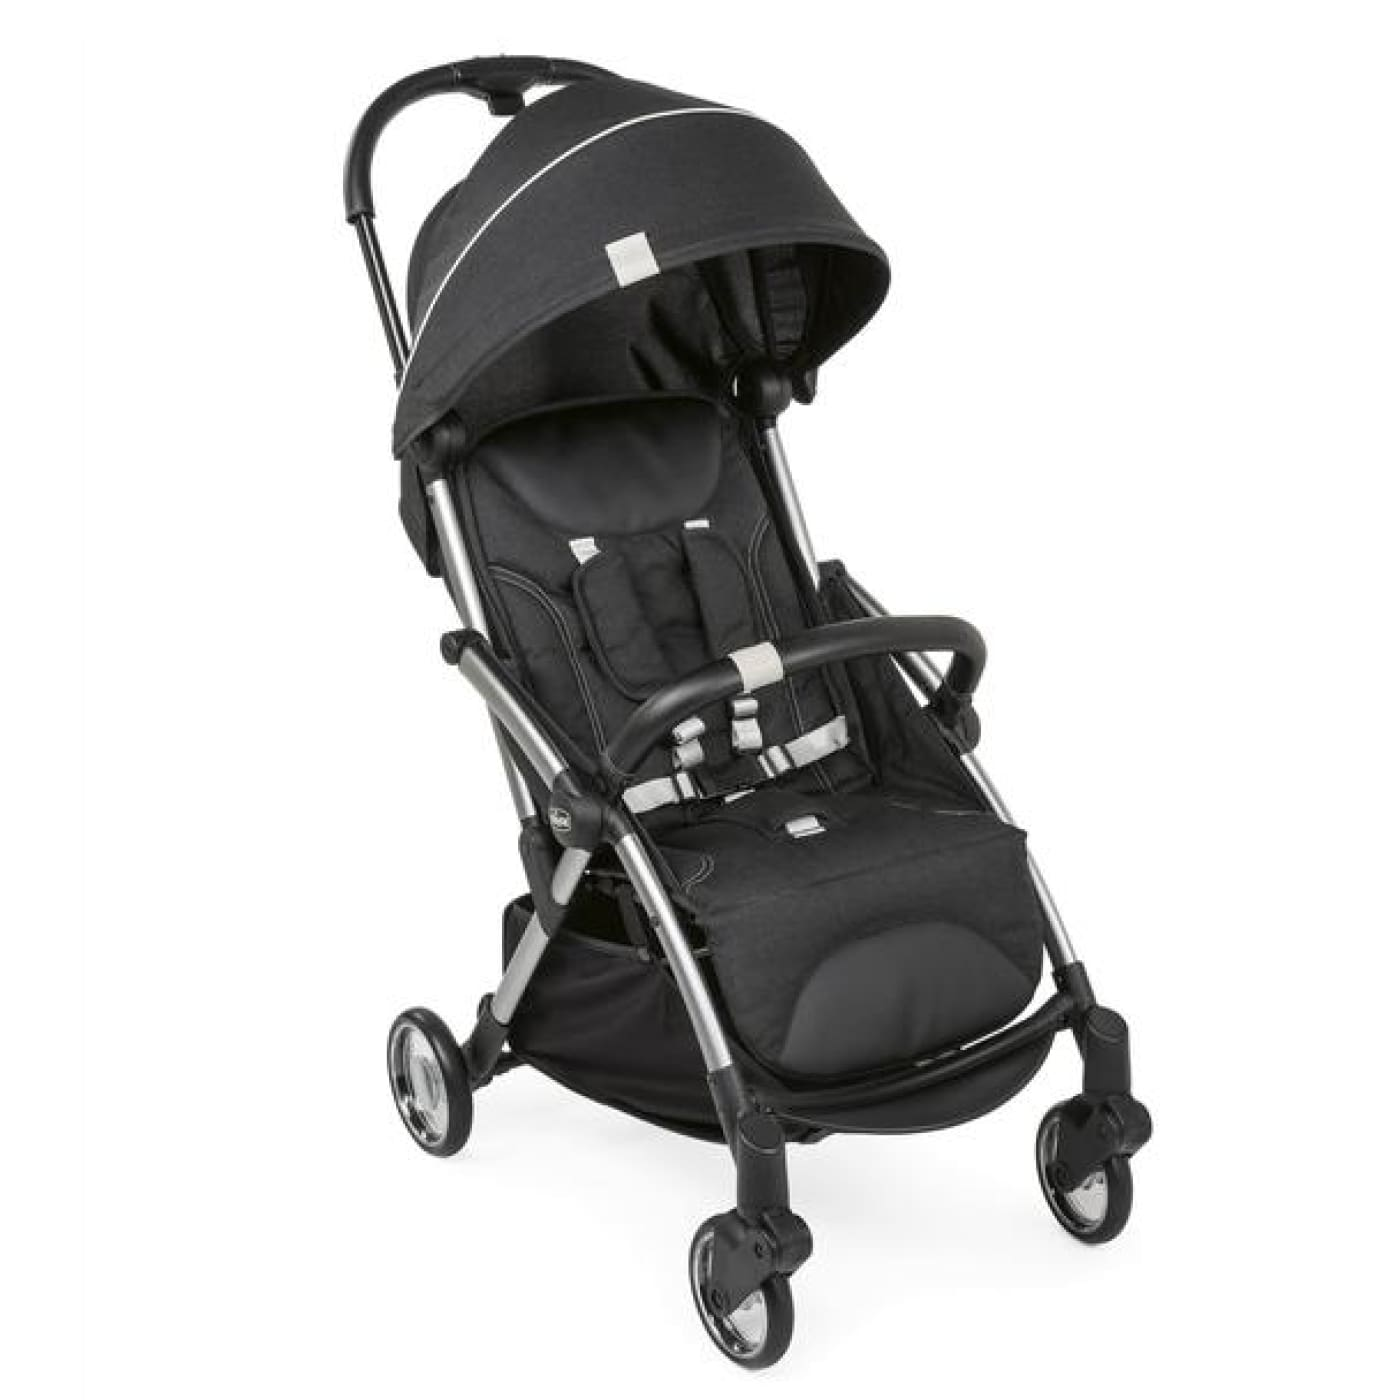 Chicco Goody Stroller - Graphite - Graphite - PRAMS & STROLLERS - COMPACT/TRAVEL